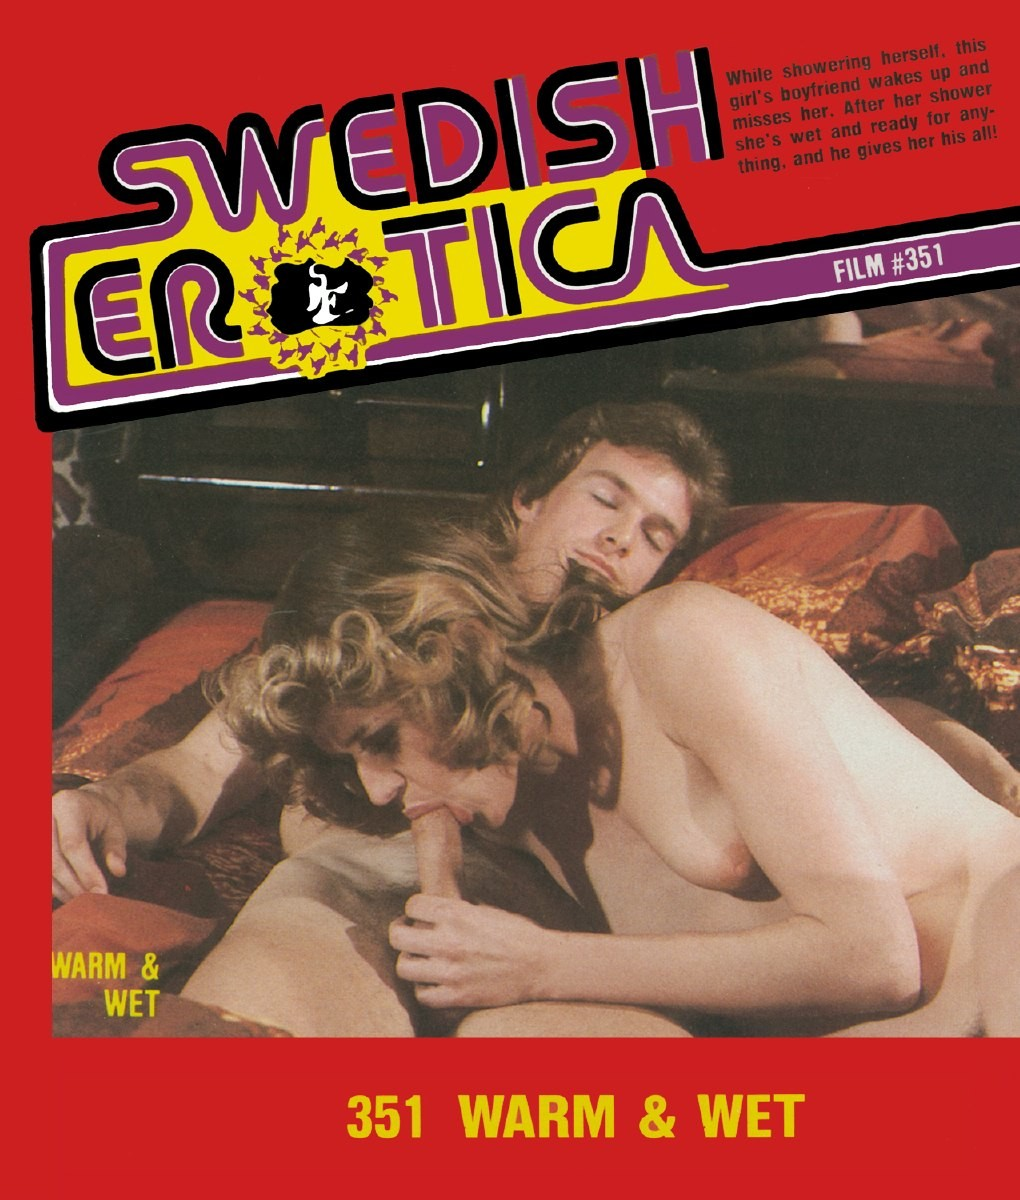 Swedish Erotica 351 - Warm & Wet